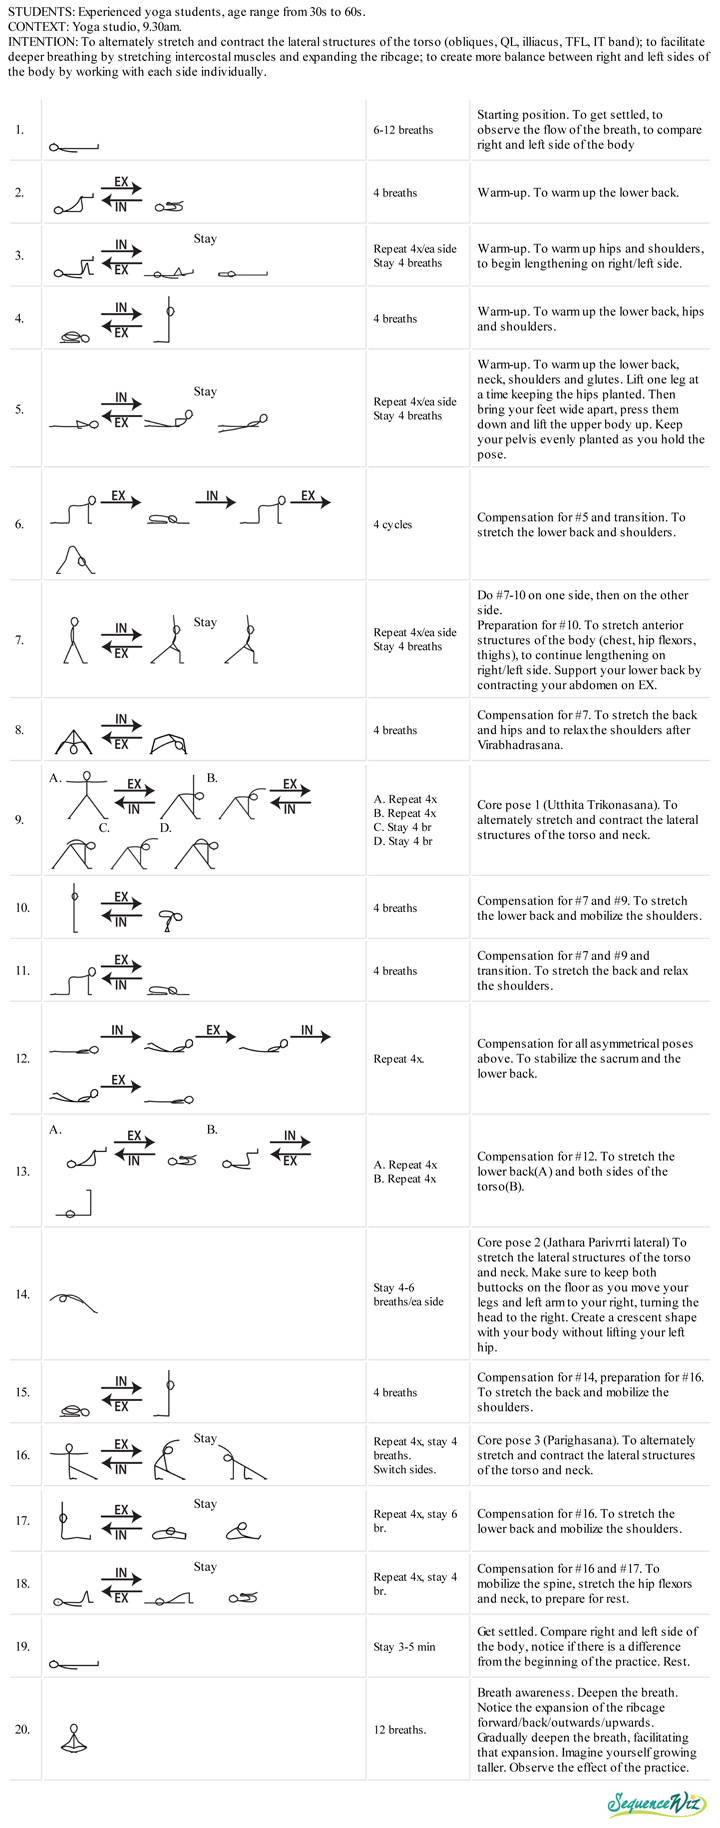 Lateral bending yoga practice